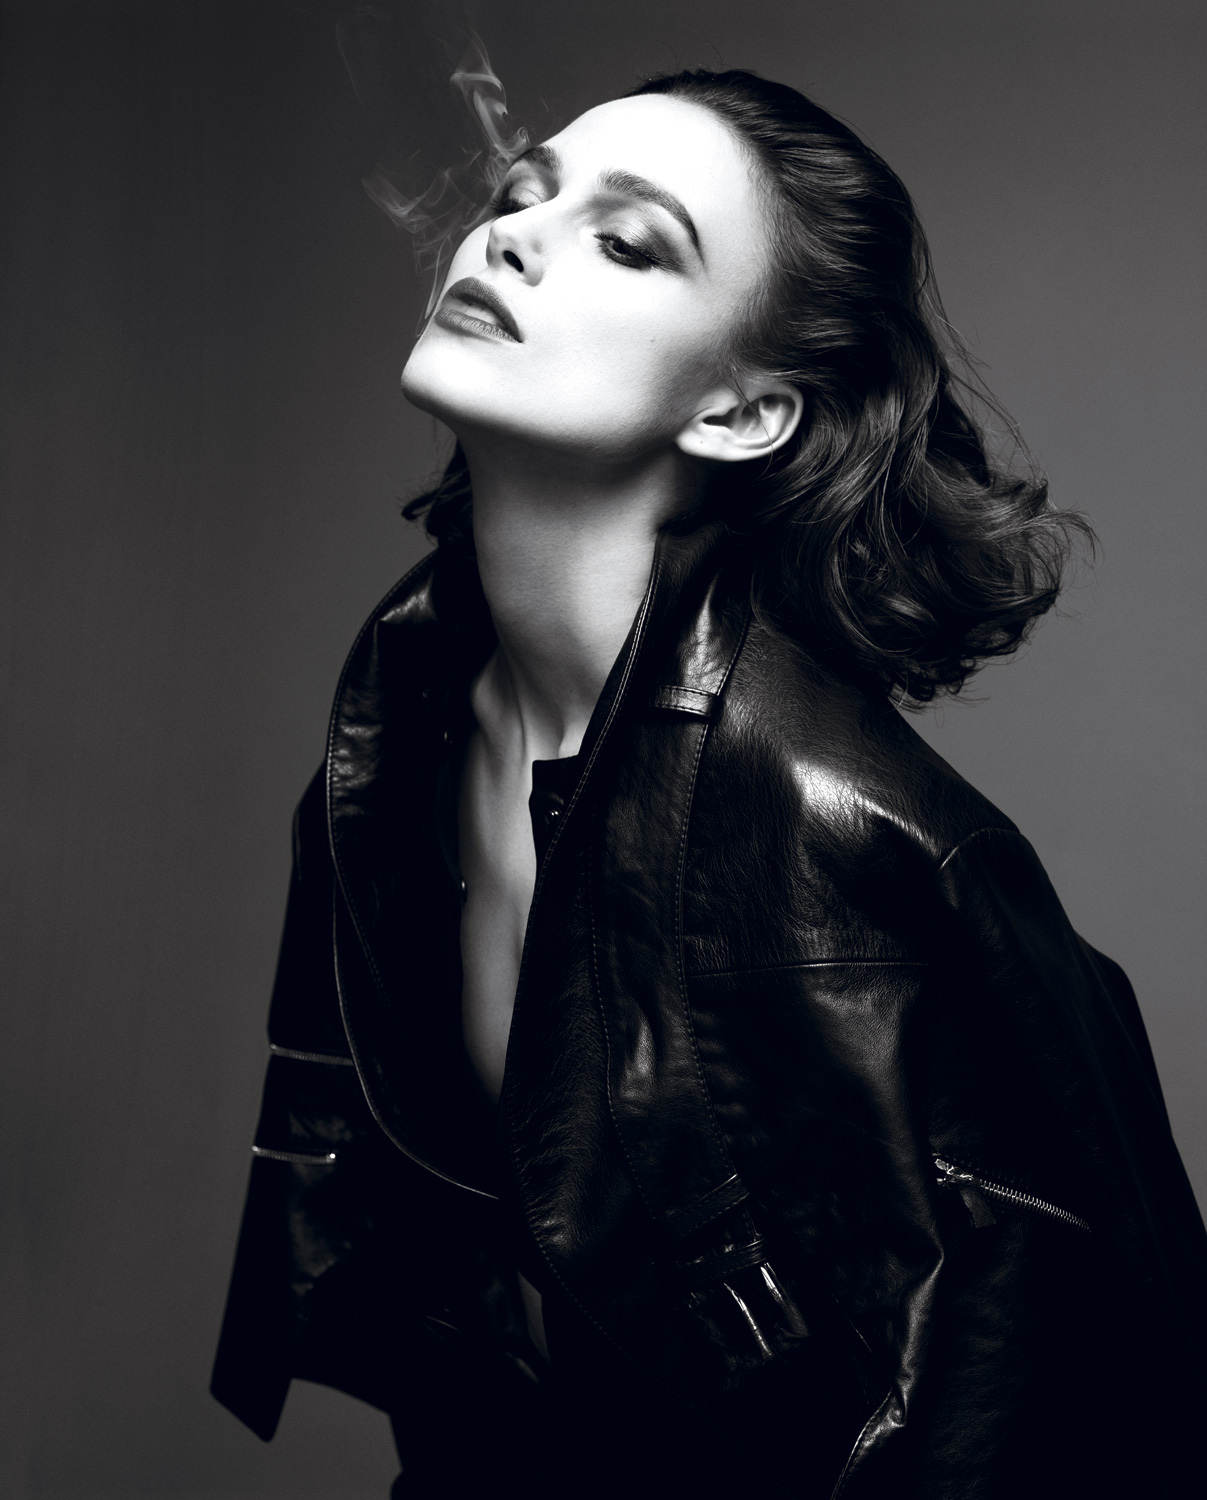 Keira Knightley In Interview Magazine April 2012 By Mert -4597